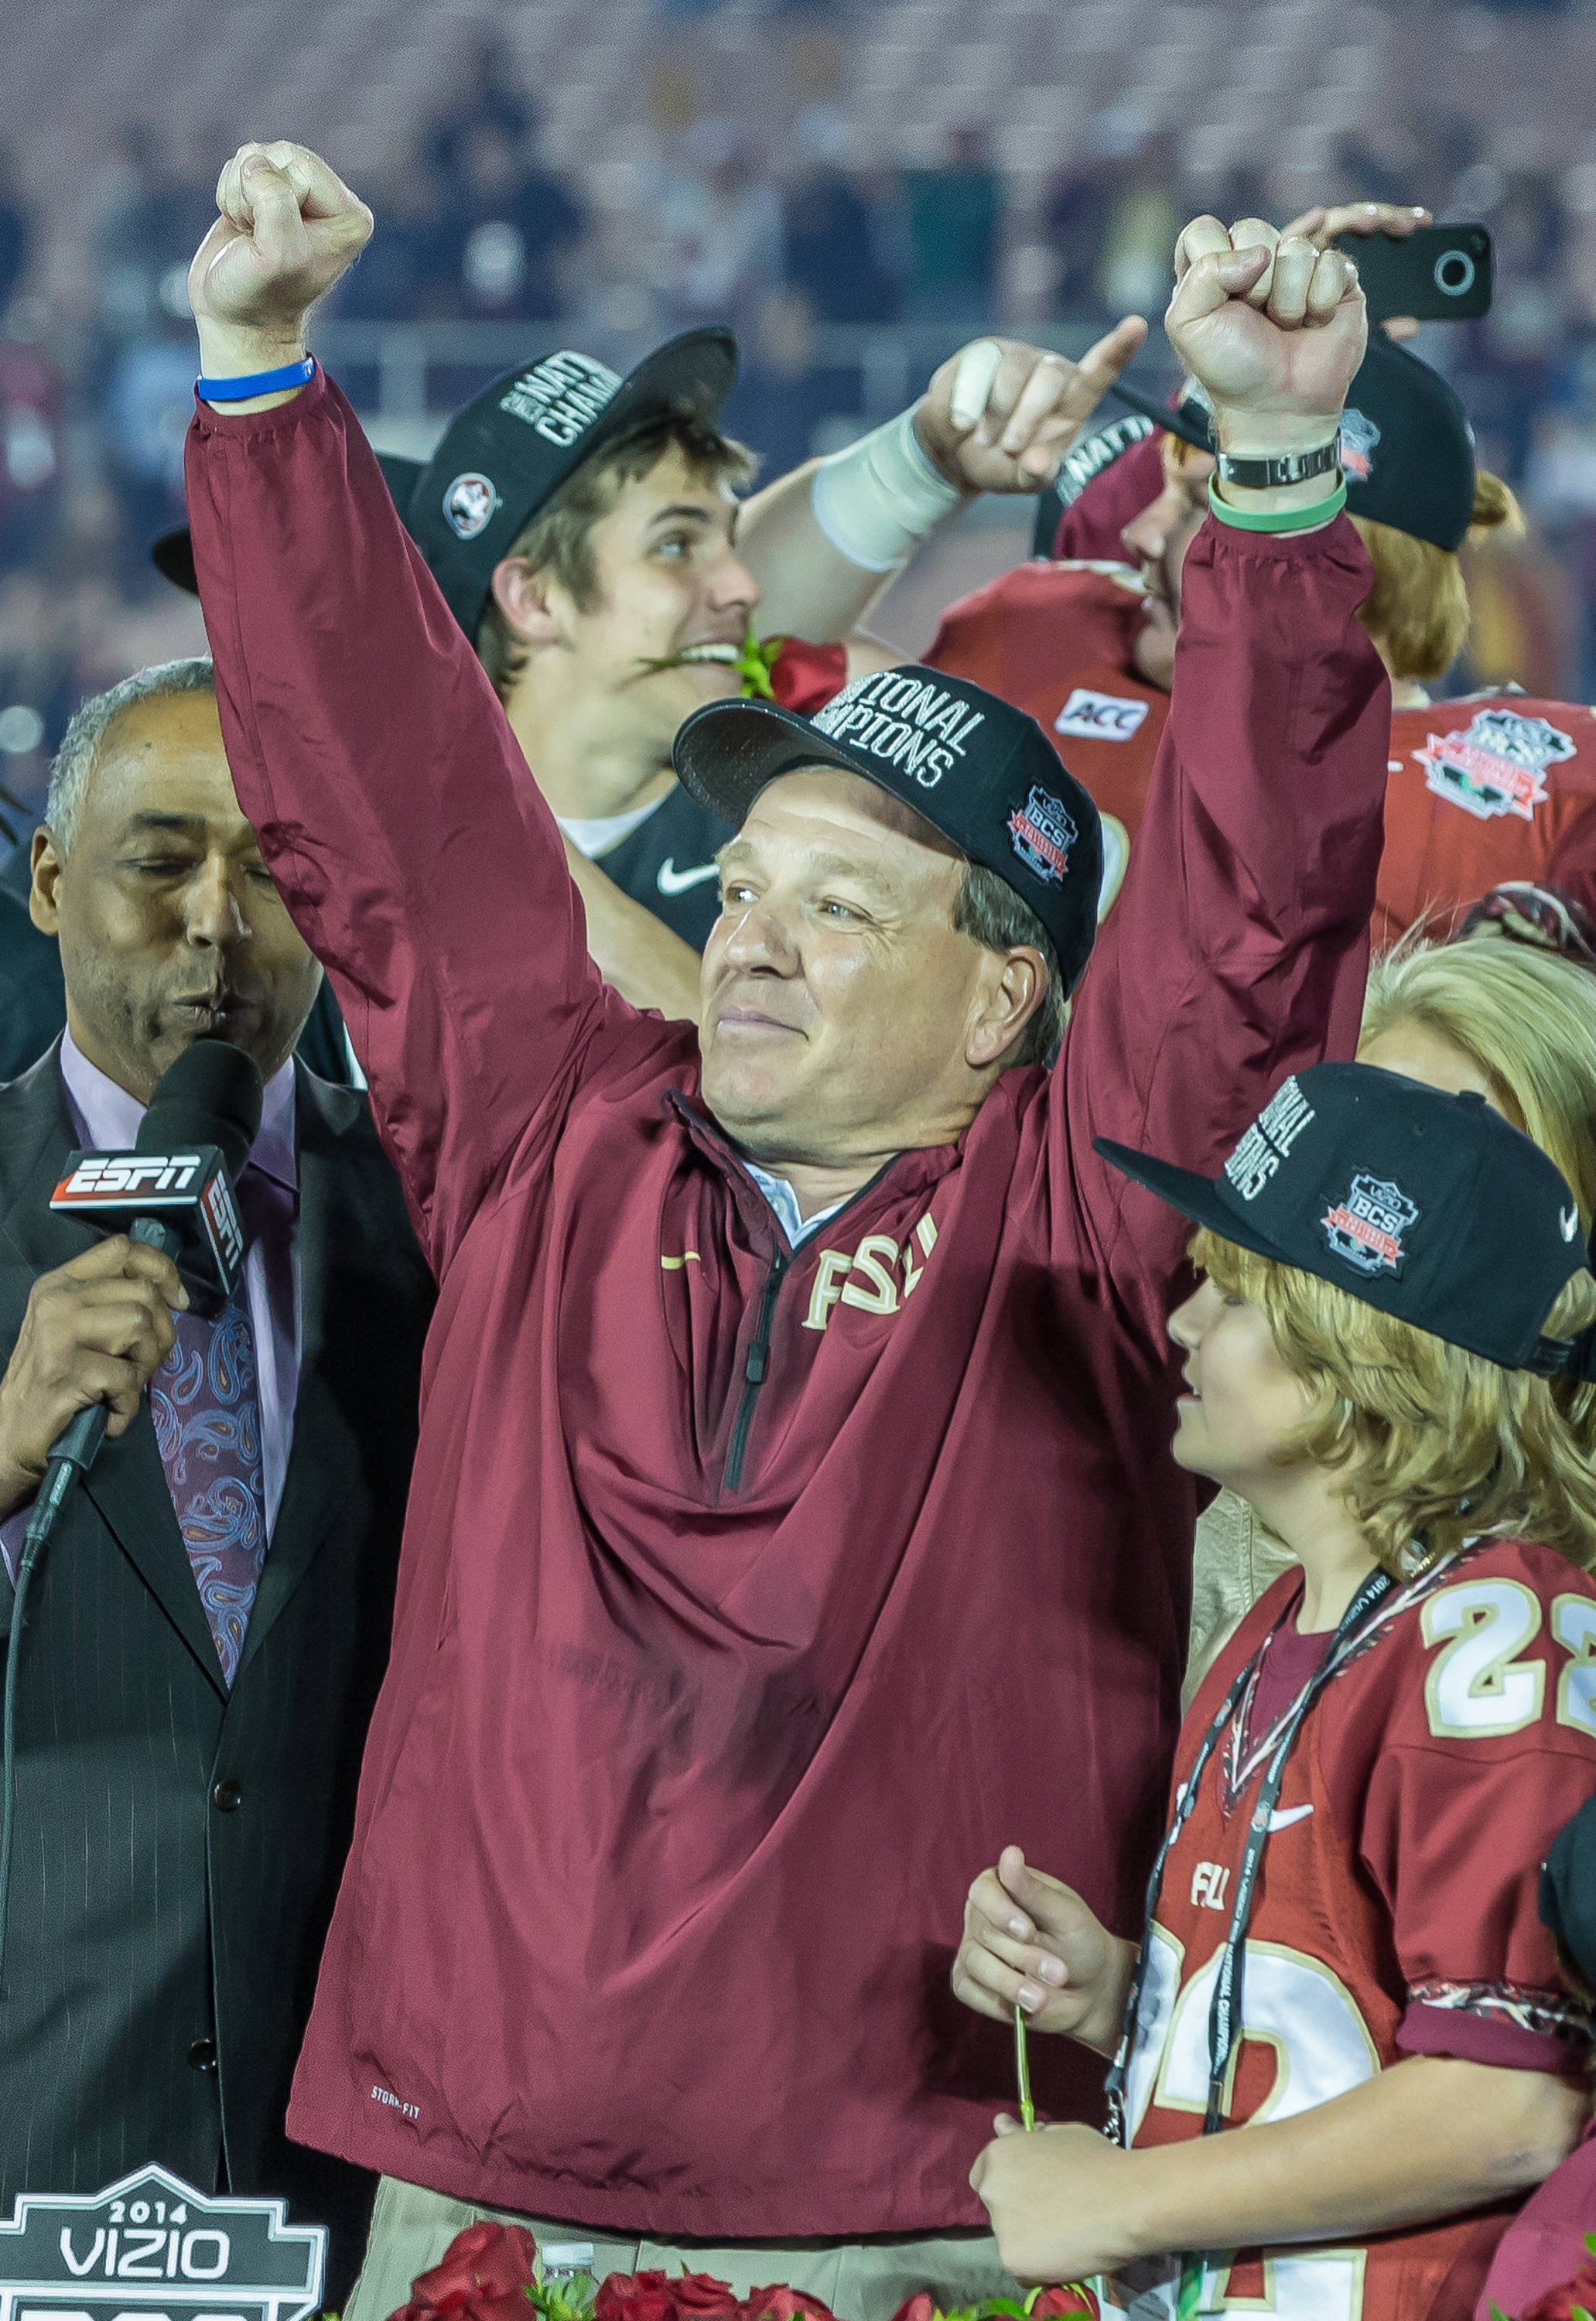 Jimbo Fisher exalts over winning the Championship.